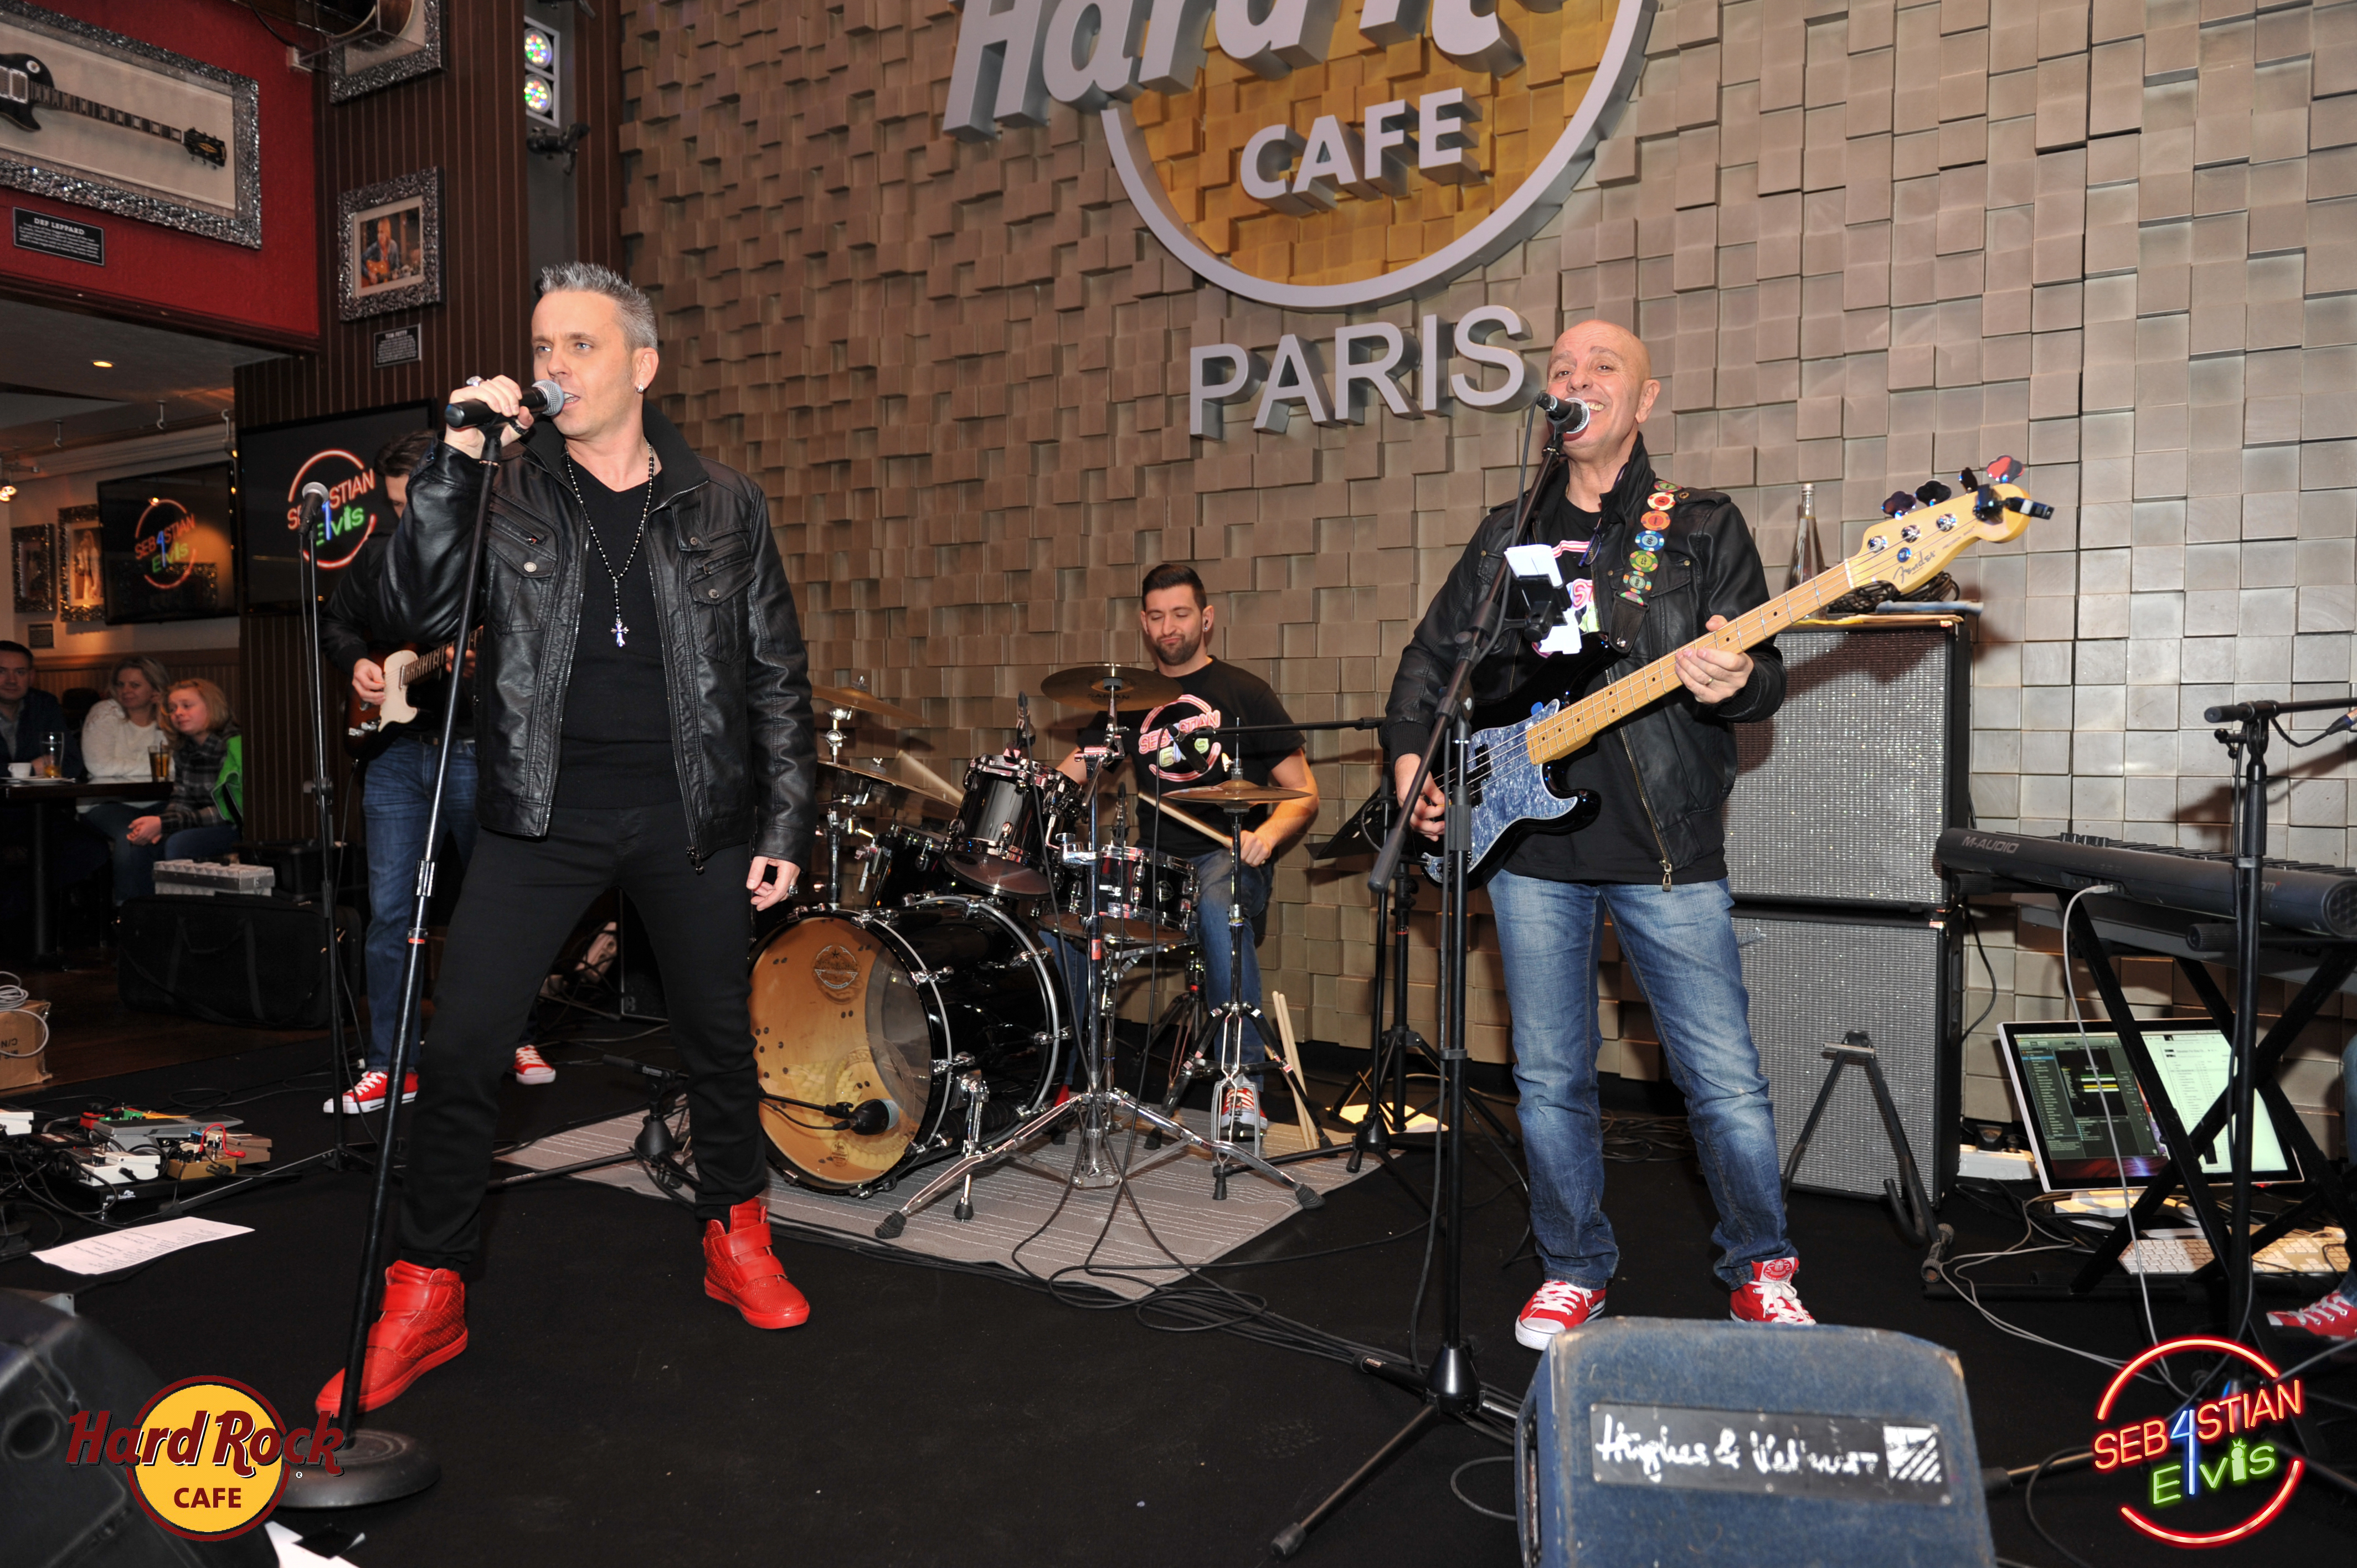 hard-rock-cafe-paris-elvis-night-27 janvier-2016-sebastian-for-elvis-facebook-memorial-show-0046